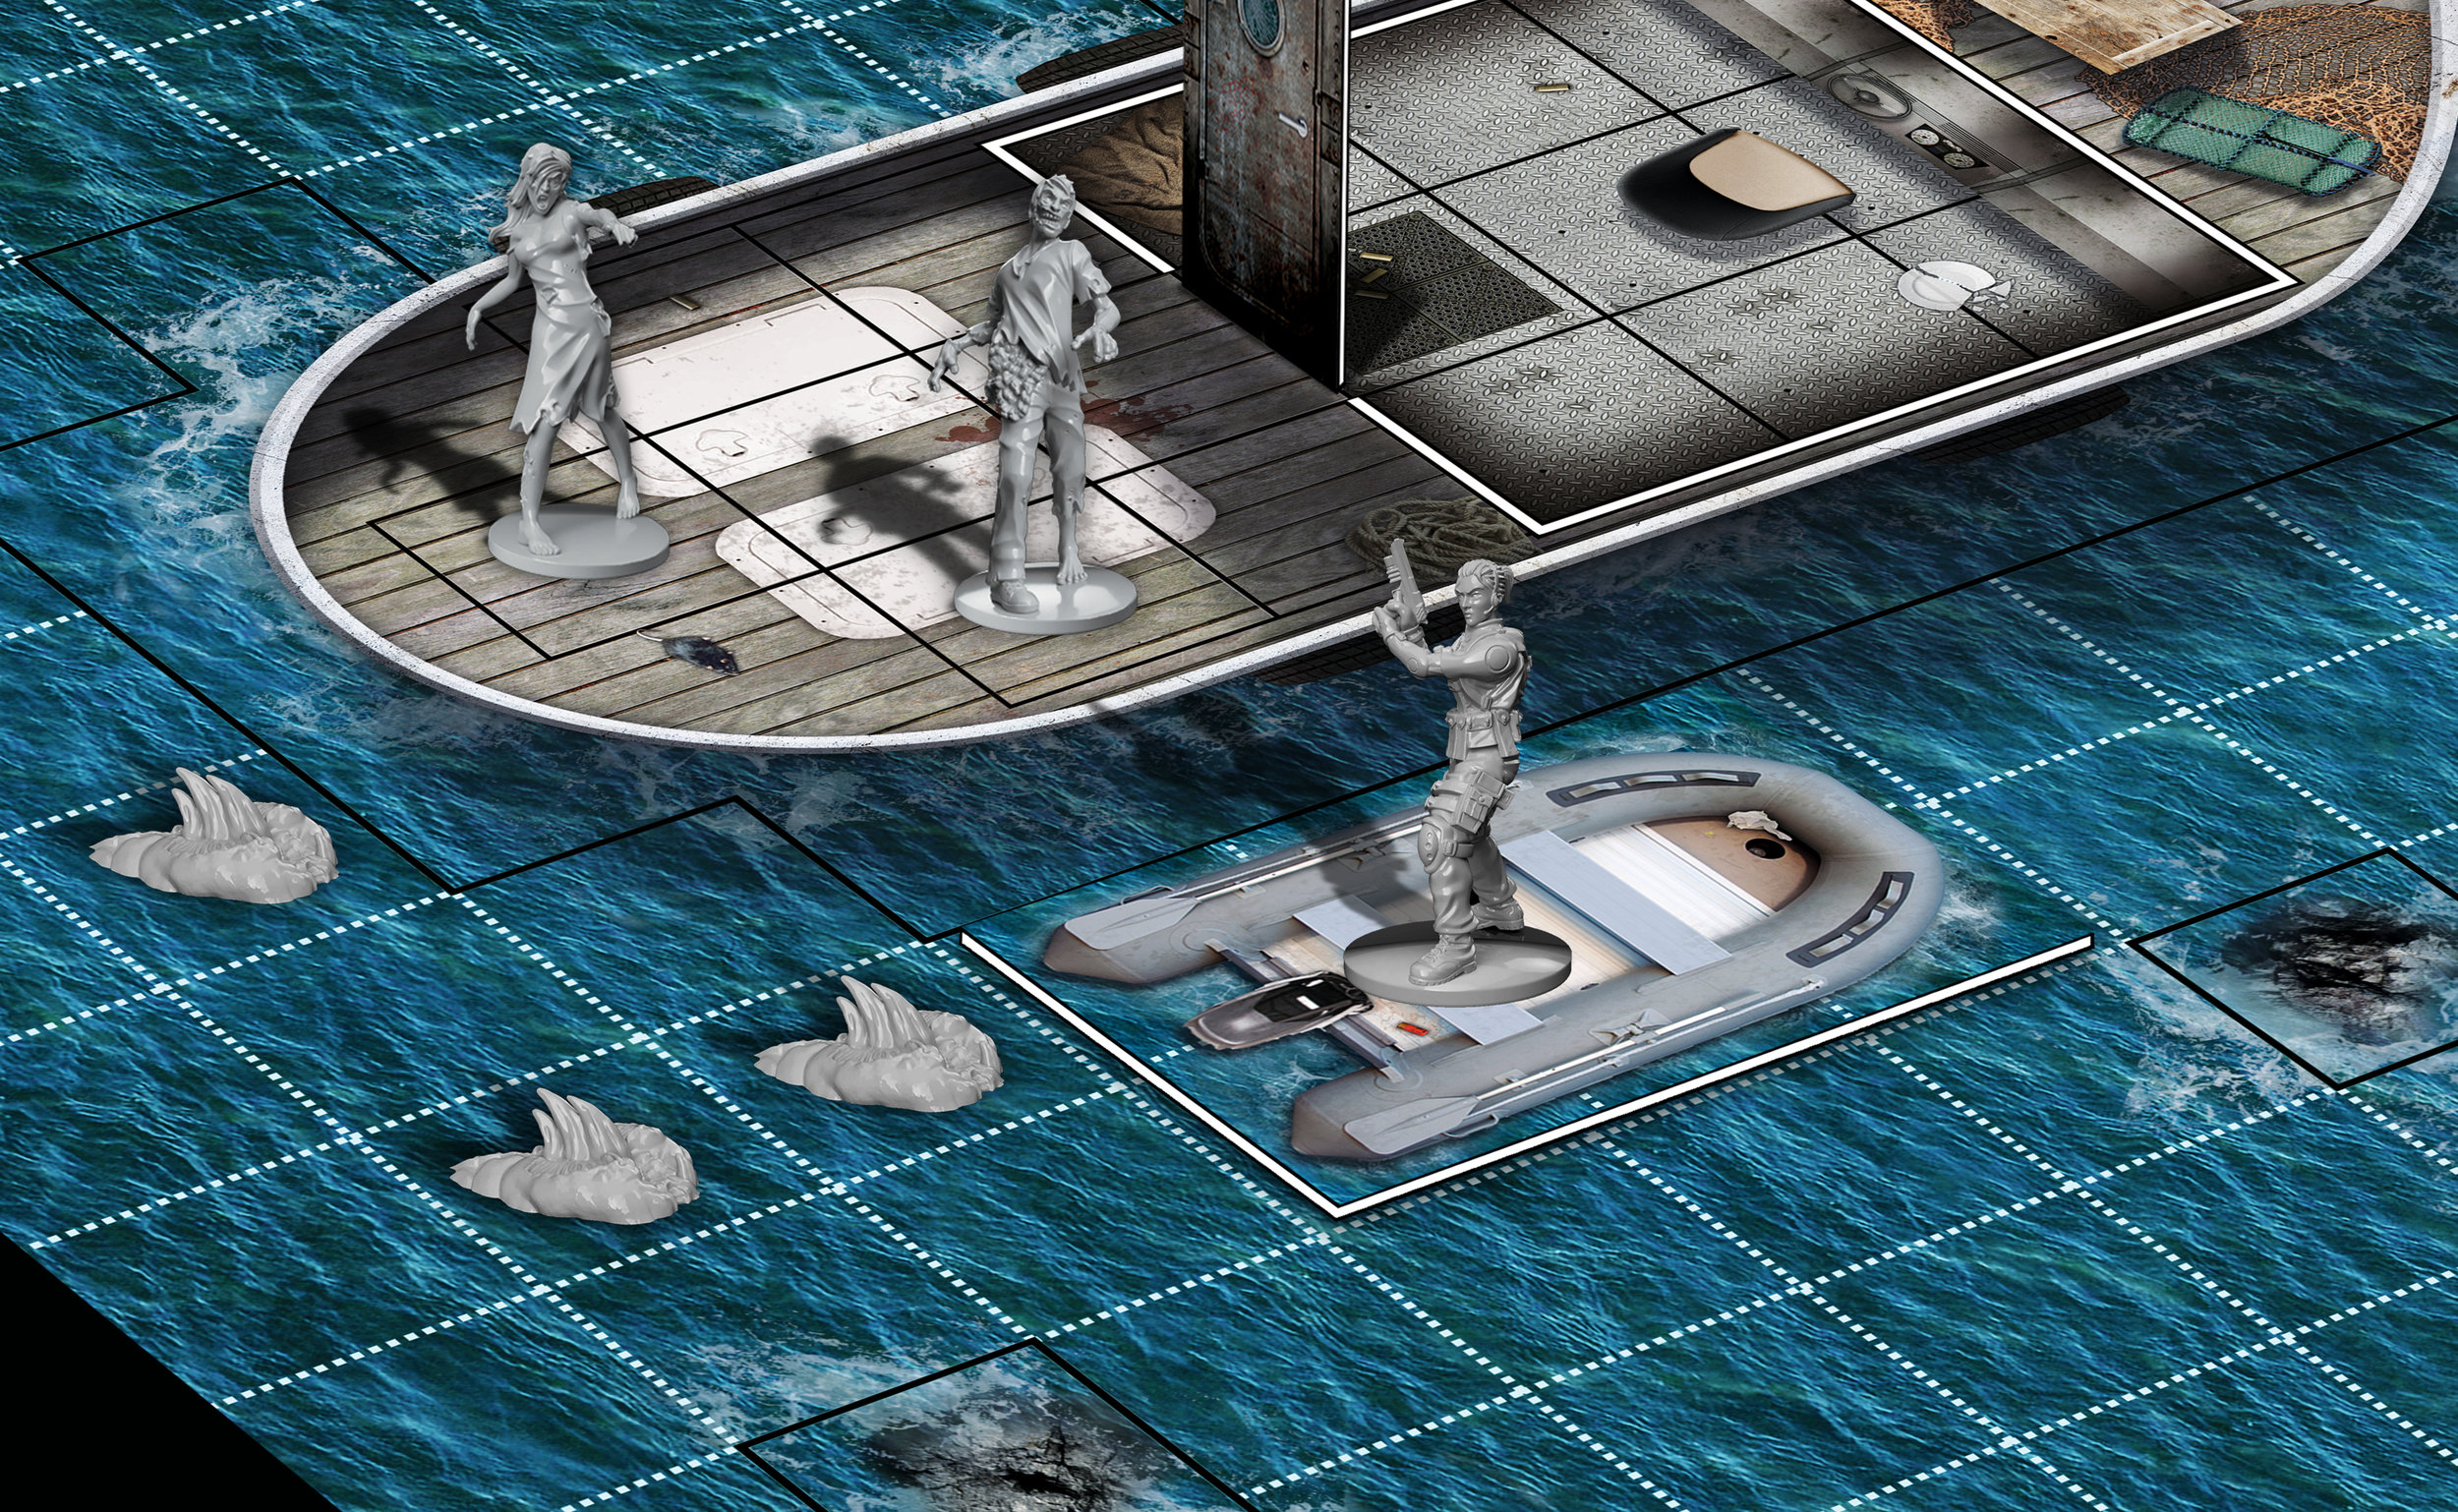 Climb aboard the rib and head out into the open water for a terrifying tussle with the aquatic Reavers.